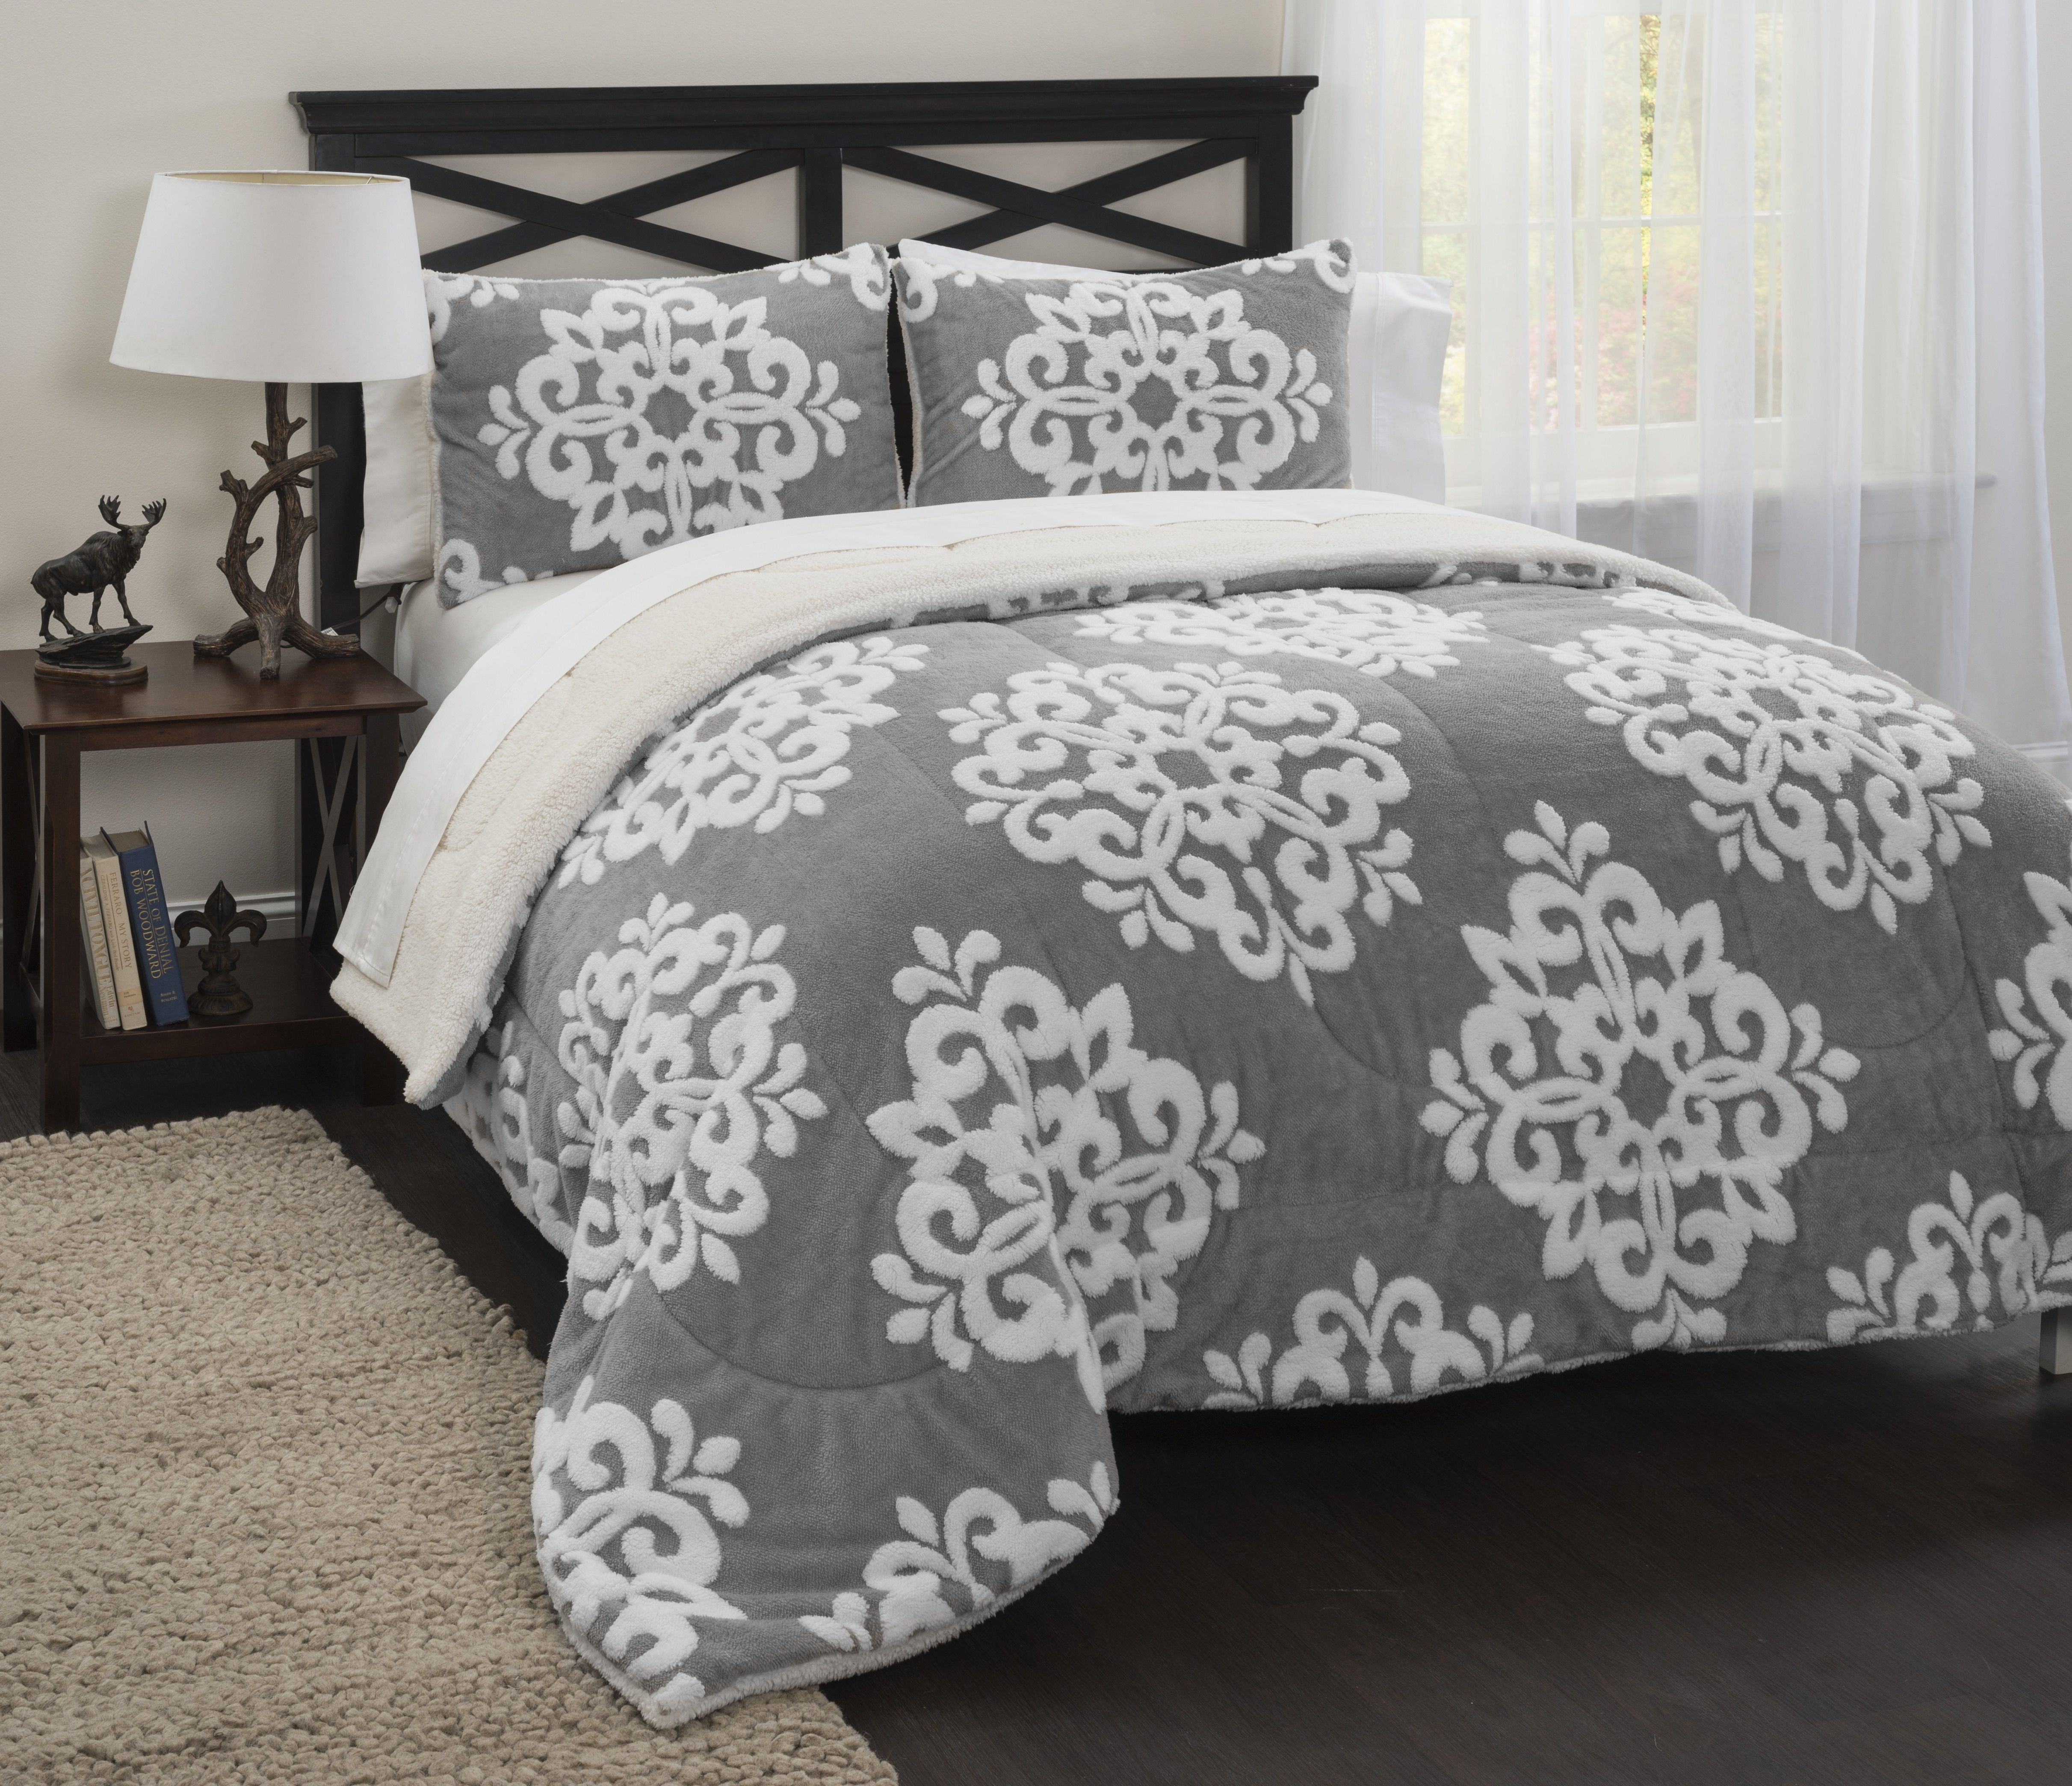 IDEA NUOVASherpa Damask Jacquard Comforter Set Brown Products - Blue and brown damask comforter